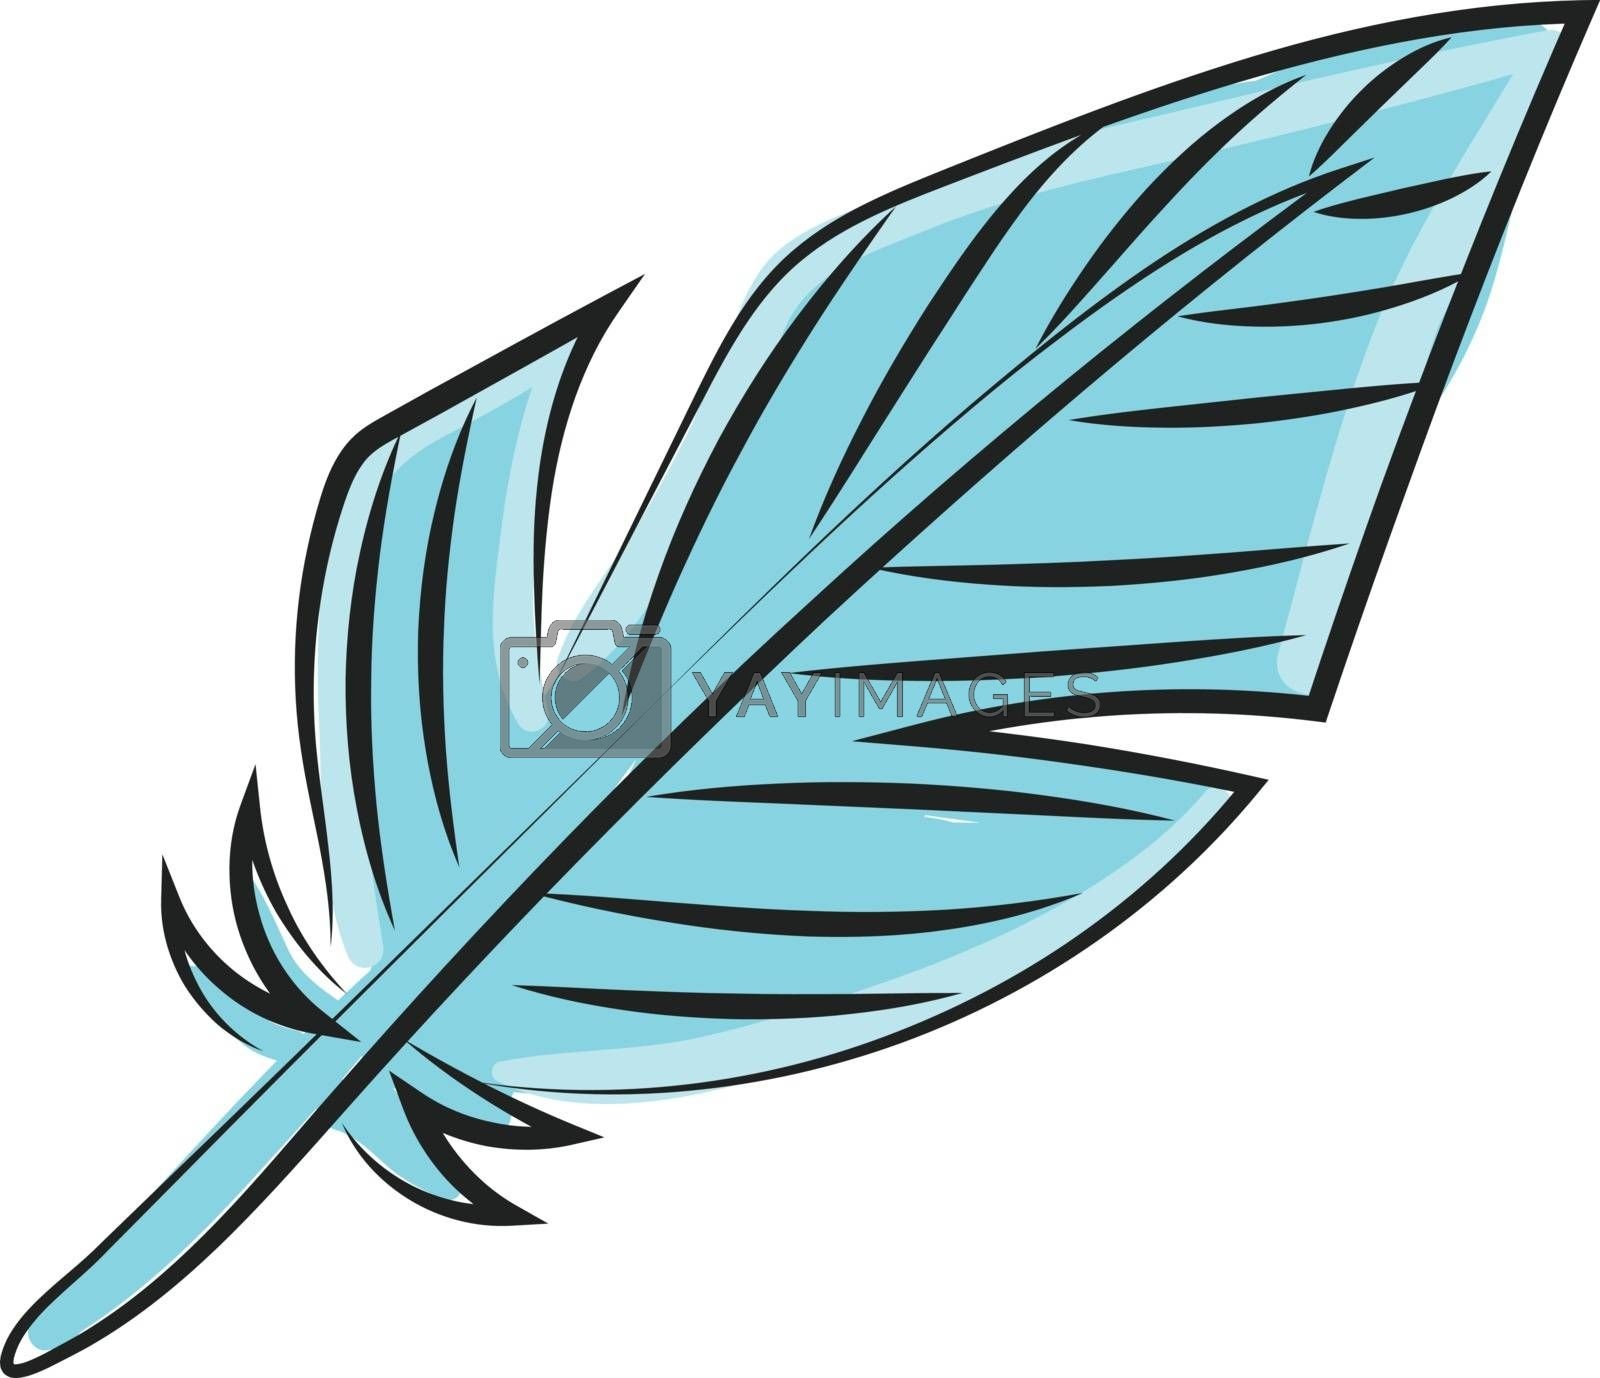 Royalty free image of Clipart of a blue-colored quill vector or color illustration by Morphart